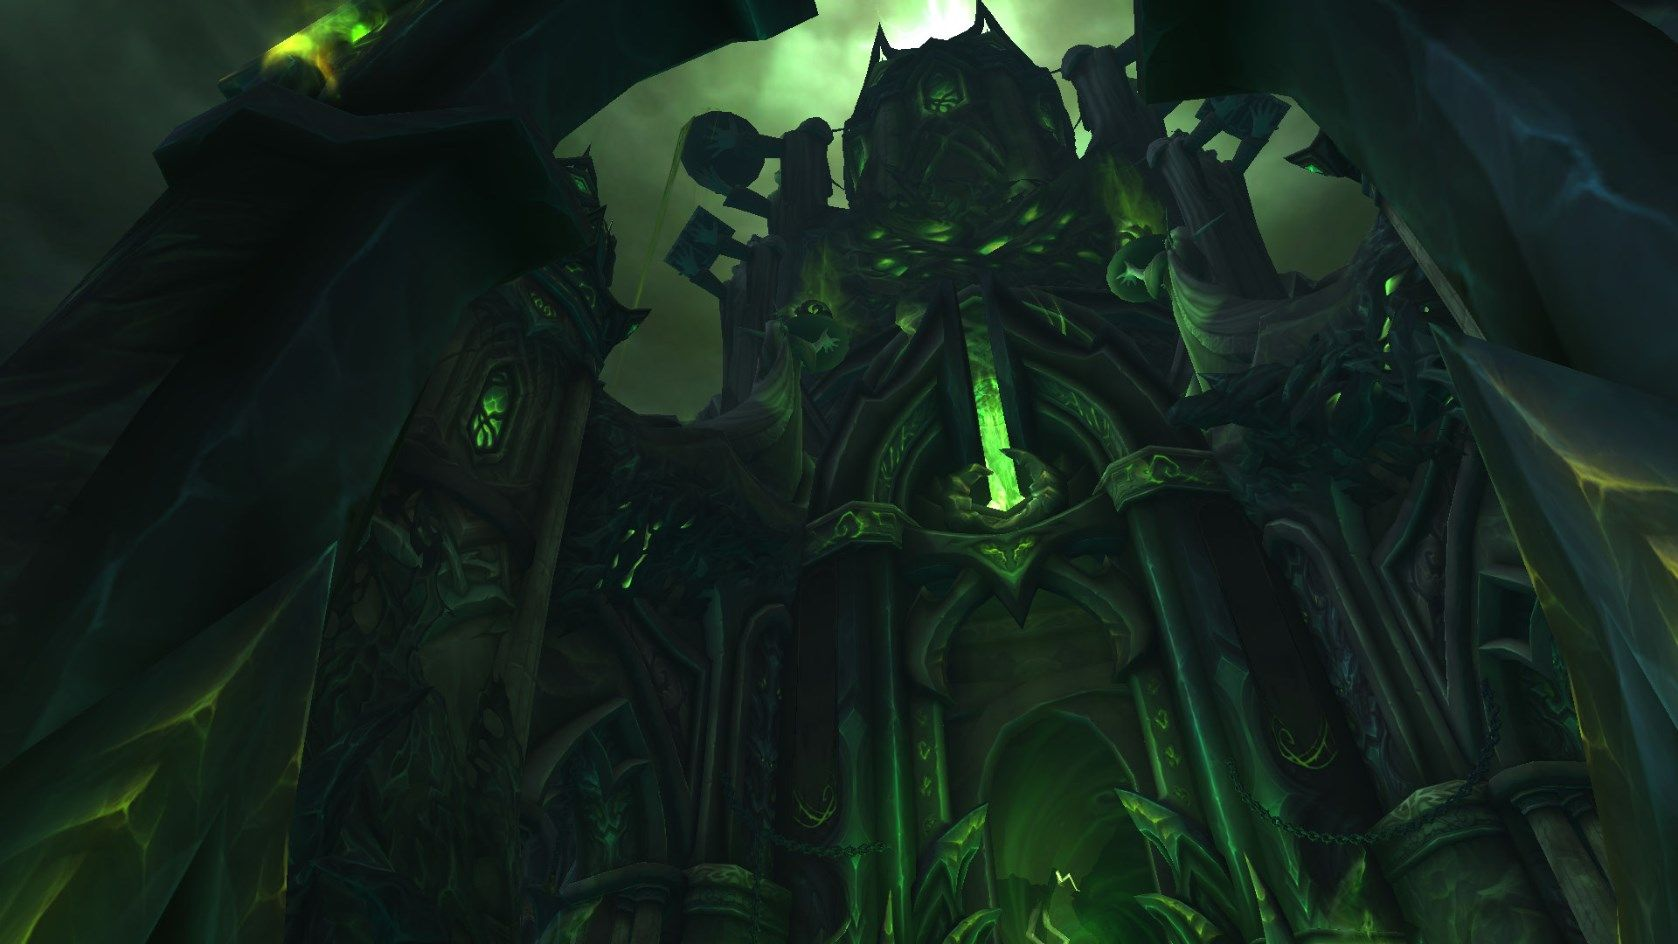 Close up in-game of the Tomb of Sargeras #worldofwarcraft #blizzard #Hearthstone #wow #Warcraft #BlizzardCS #gaming